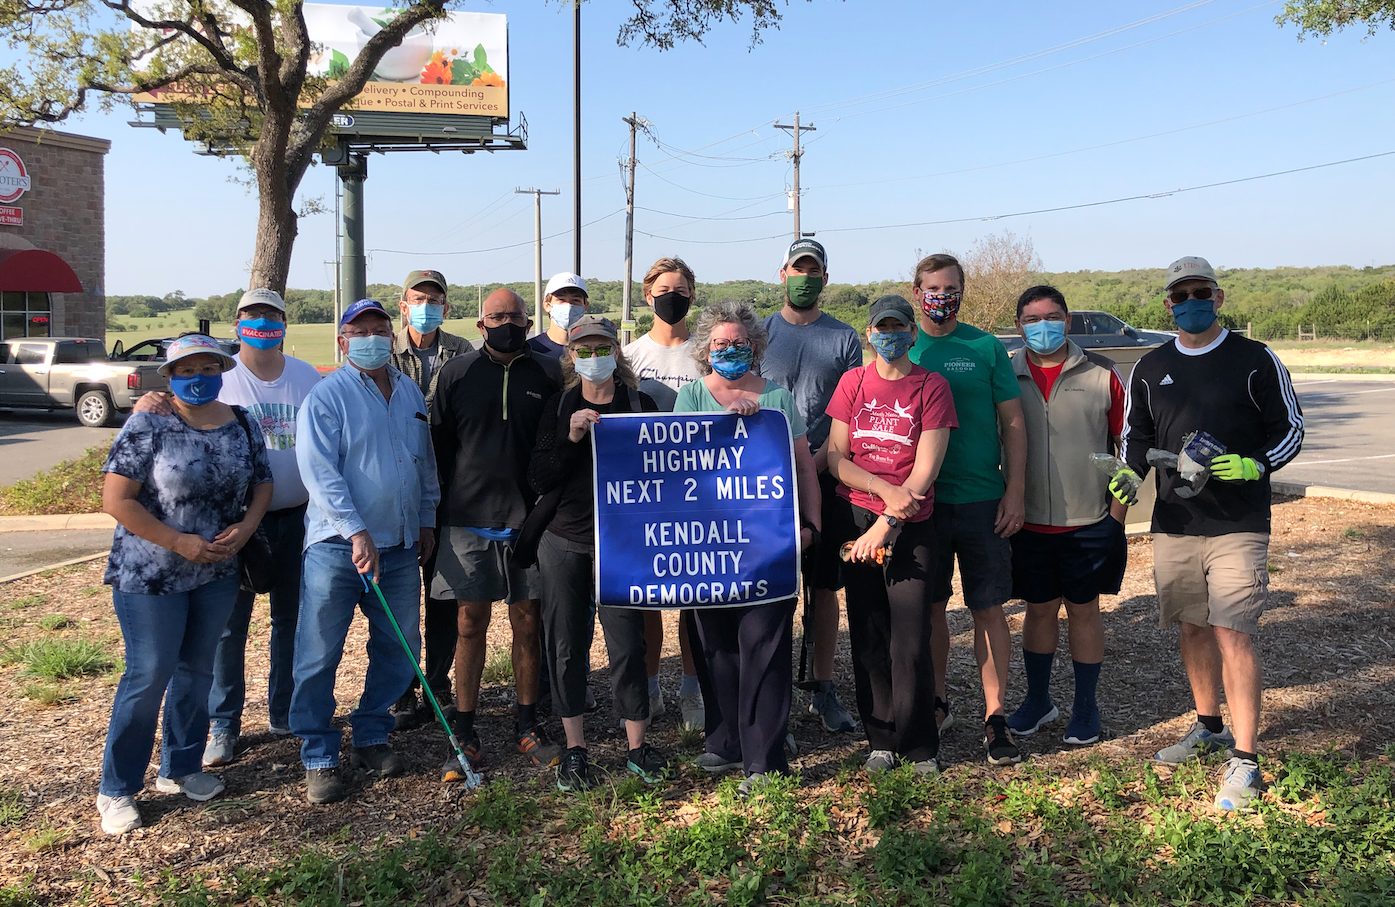 """Group photo with the """"Adopt-a-Highway"""" sign"""